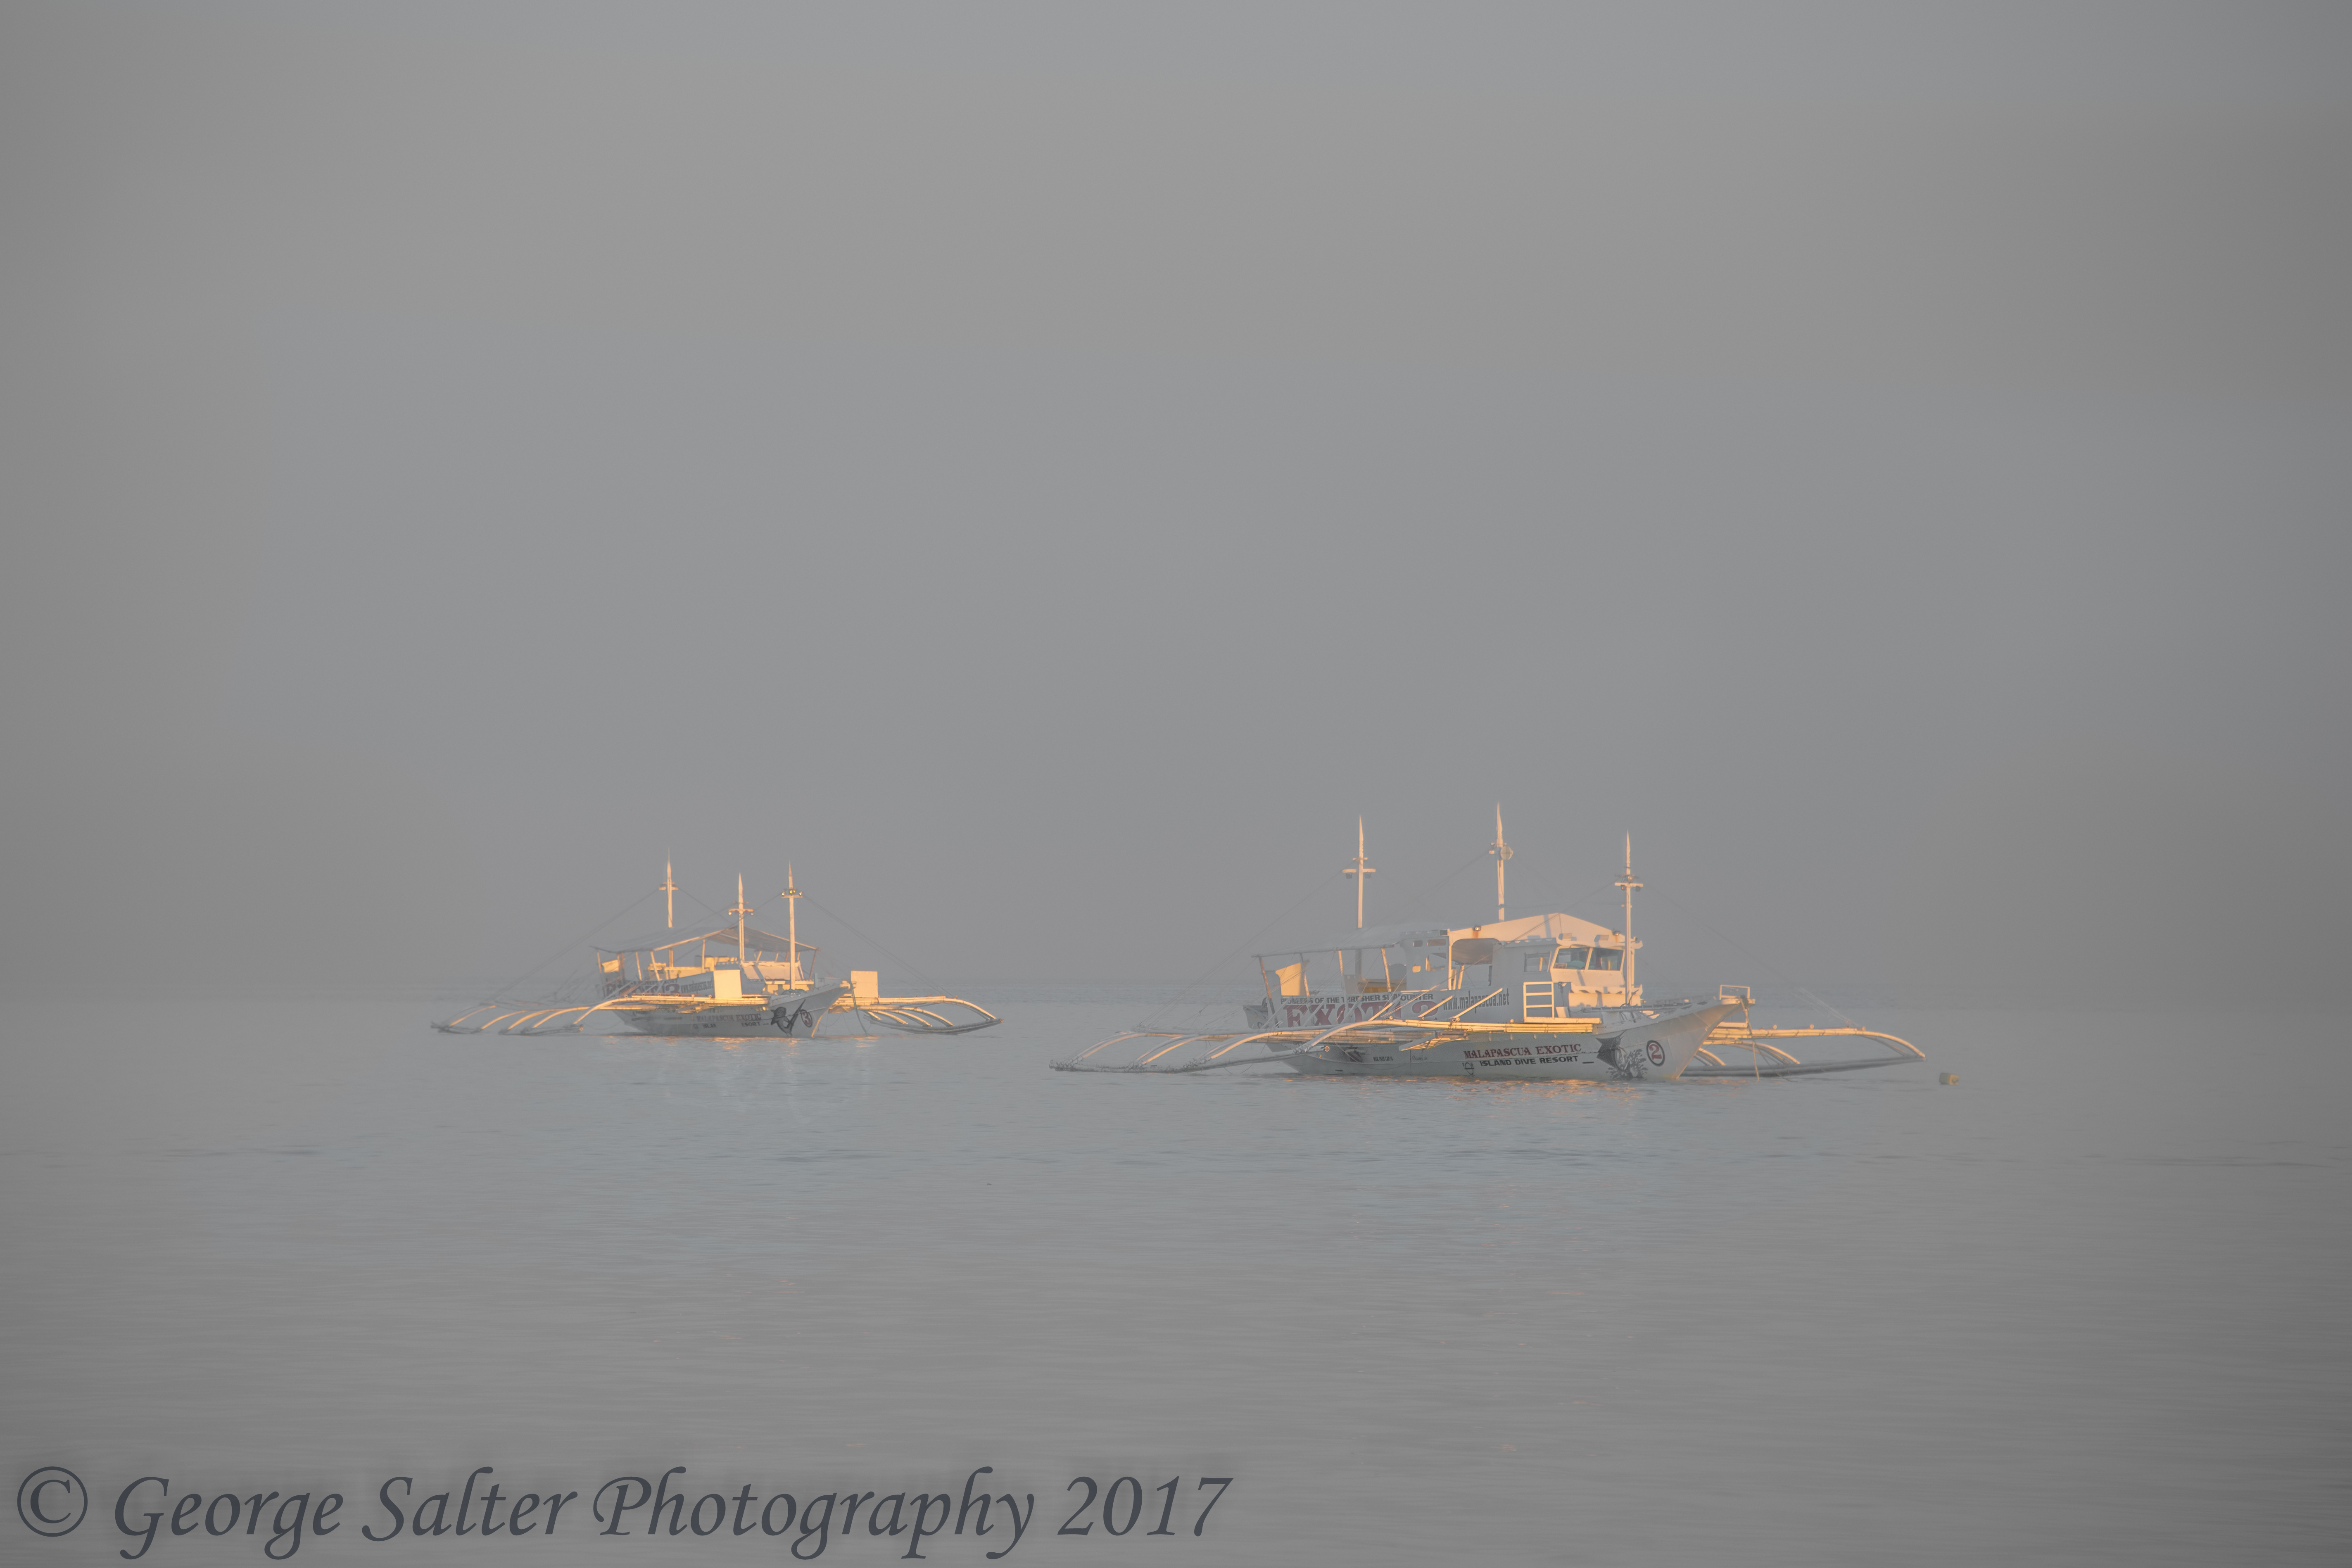 Outriggers in Haze